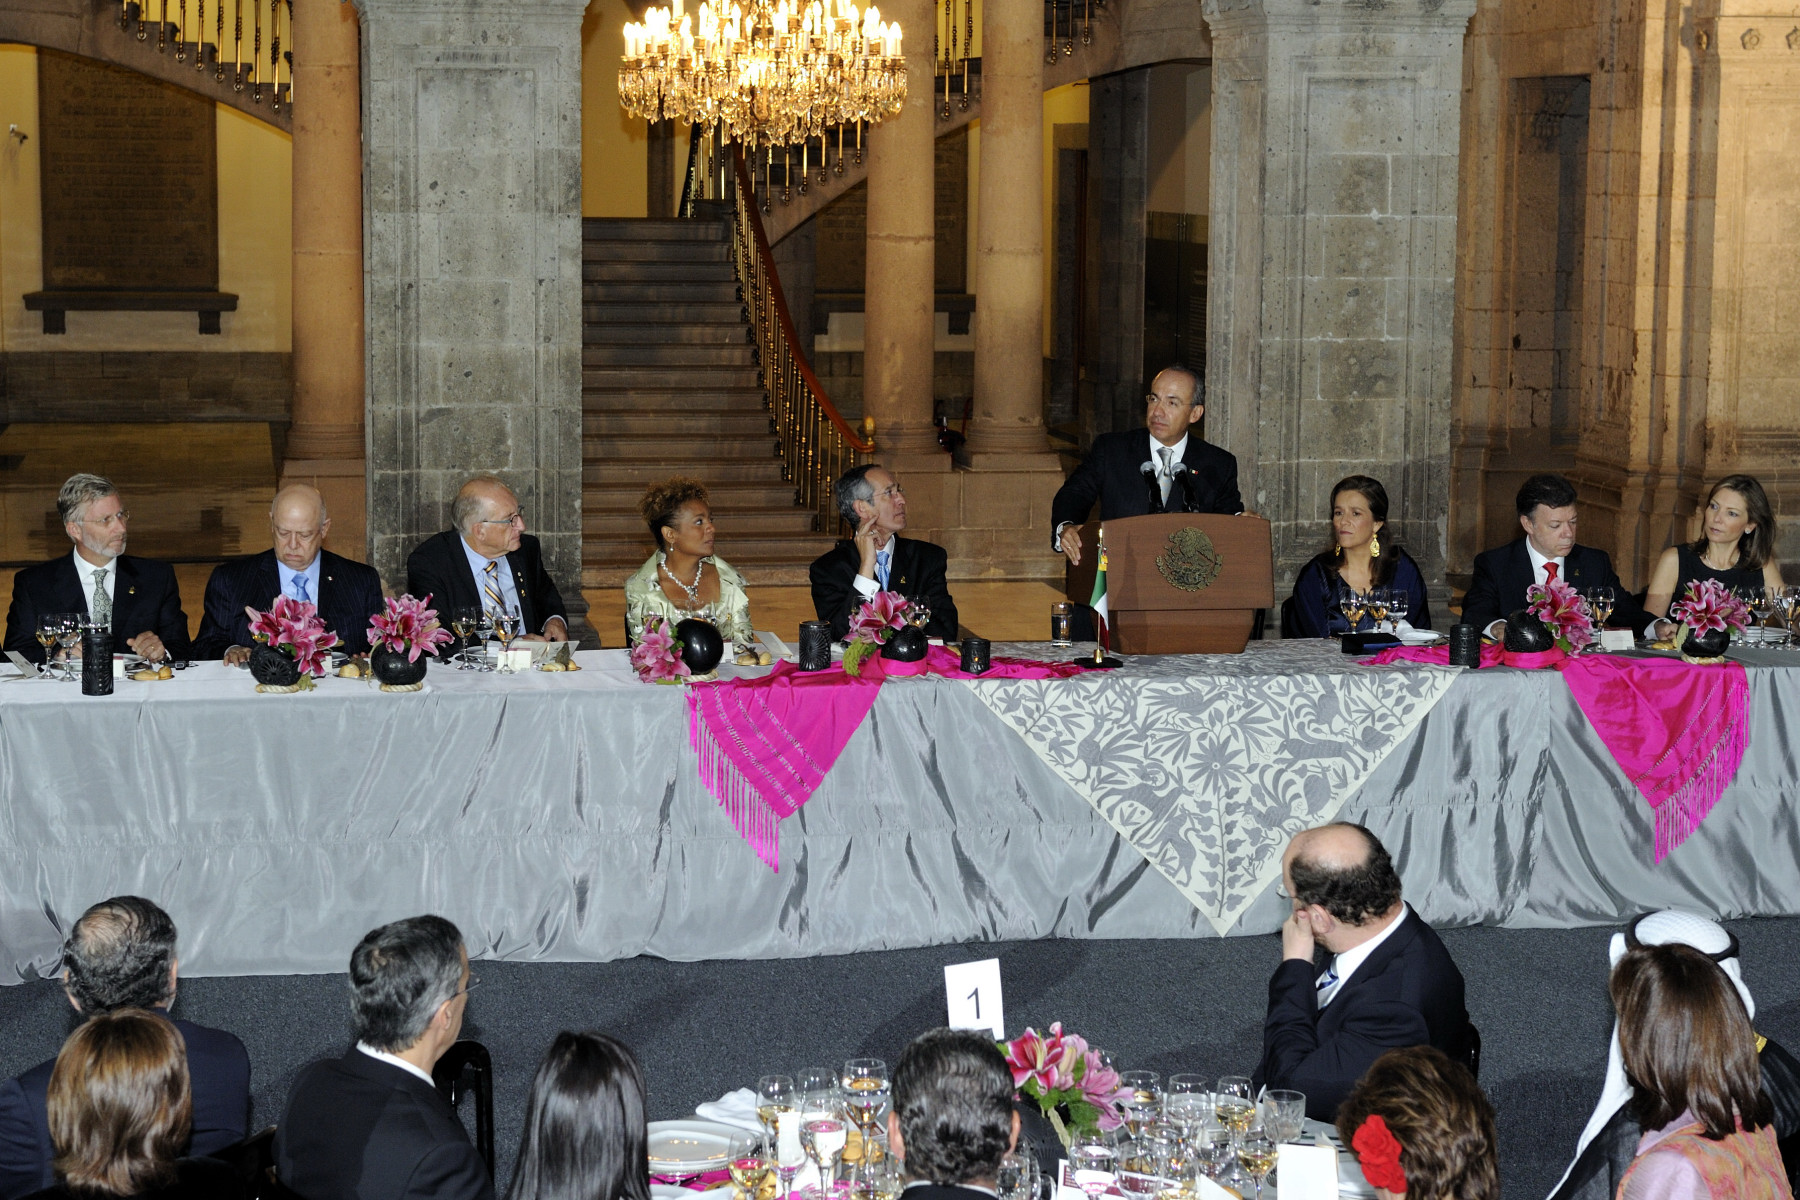 His Excellency Felipe Calderón Hinojosa delivered a speech at the official dinner hosted in honour of the bicentennial of the independence of the United Mexican States and the centennial of its revolution.